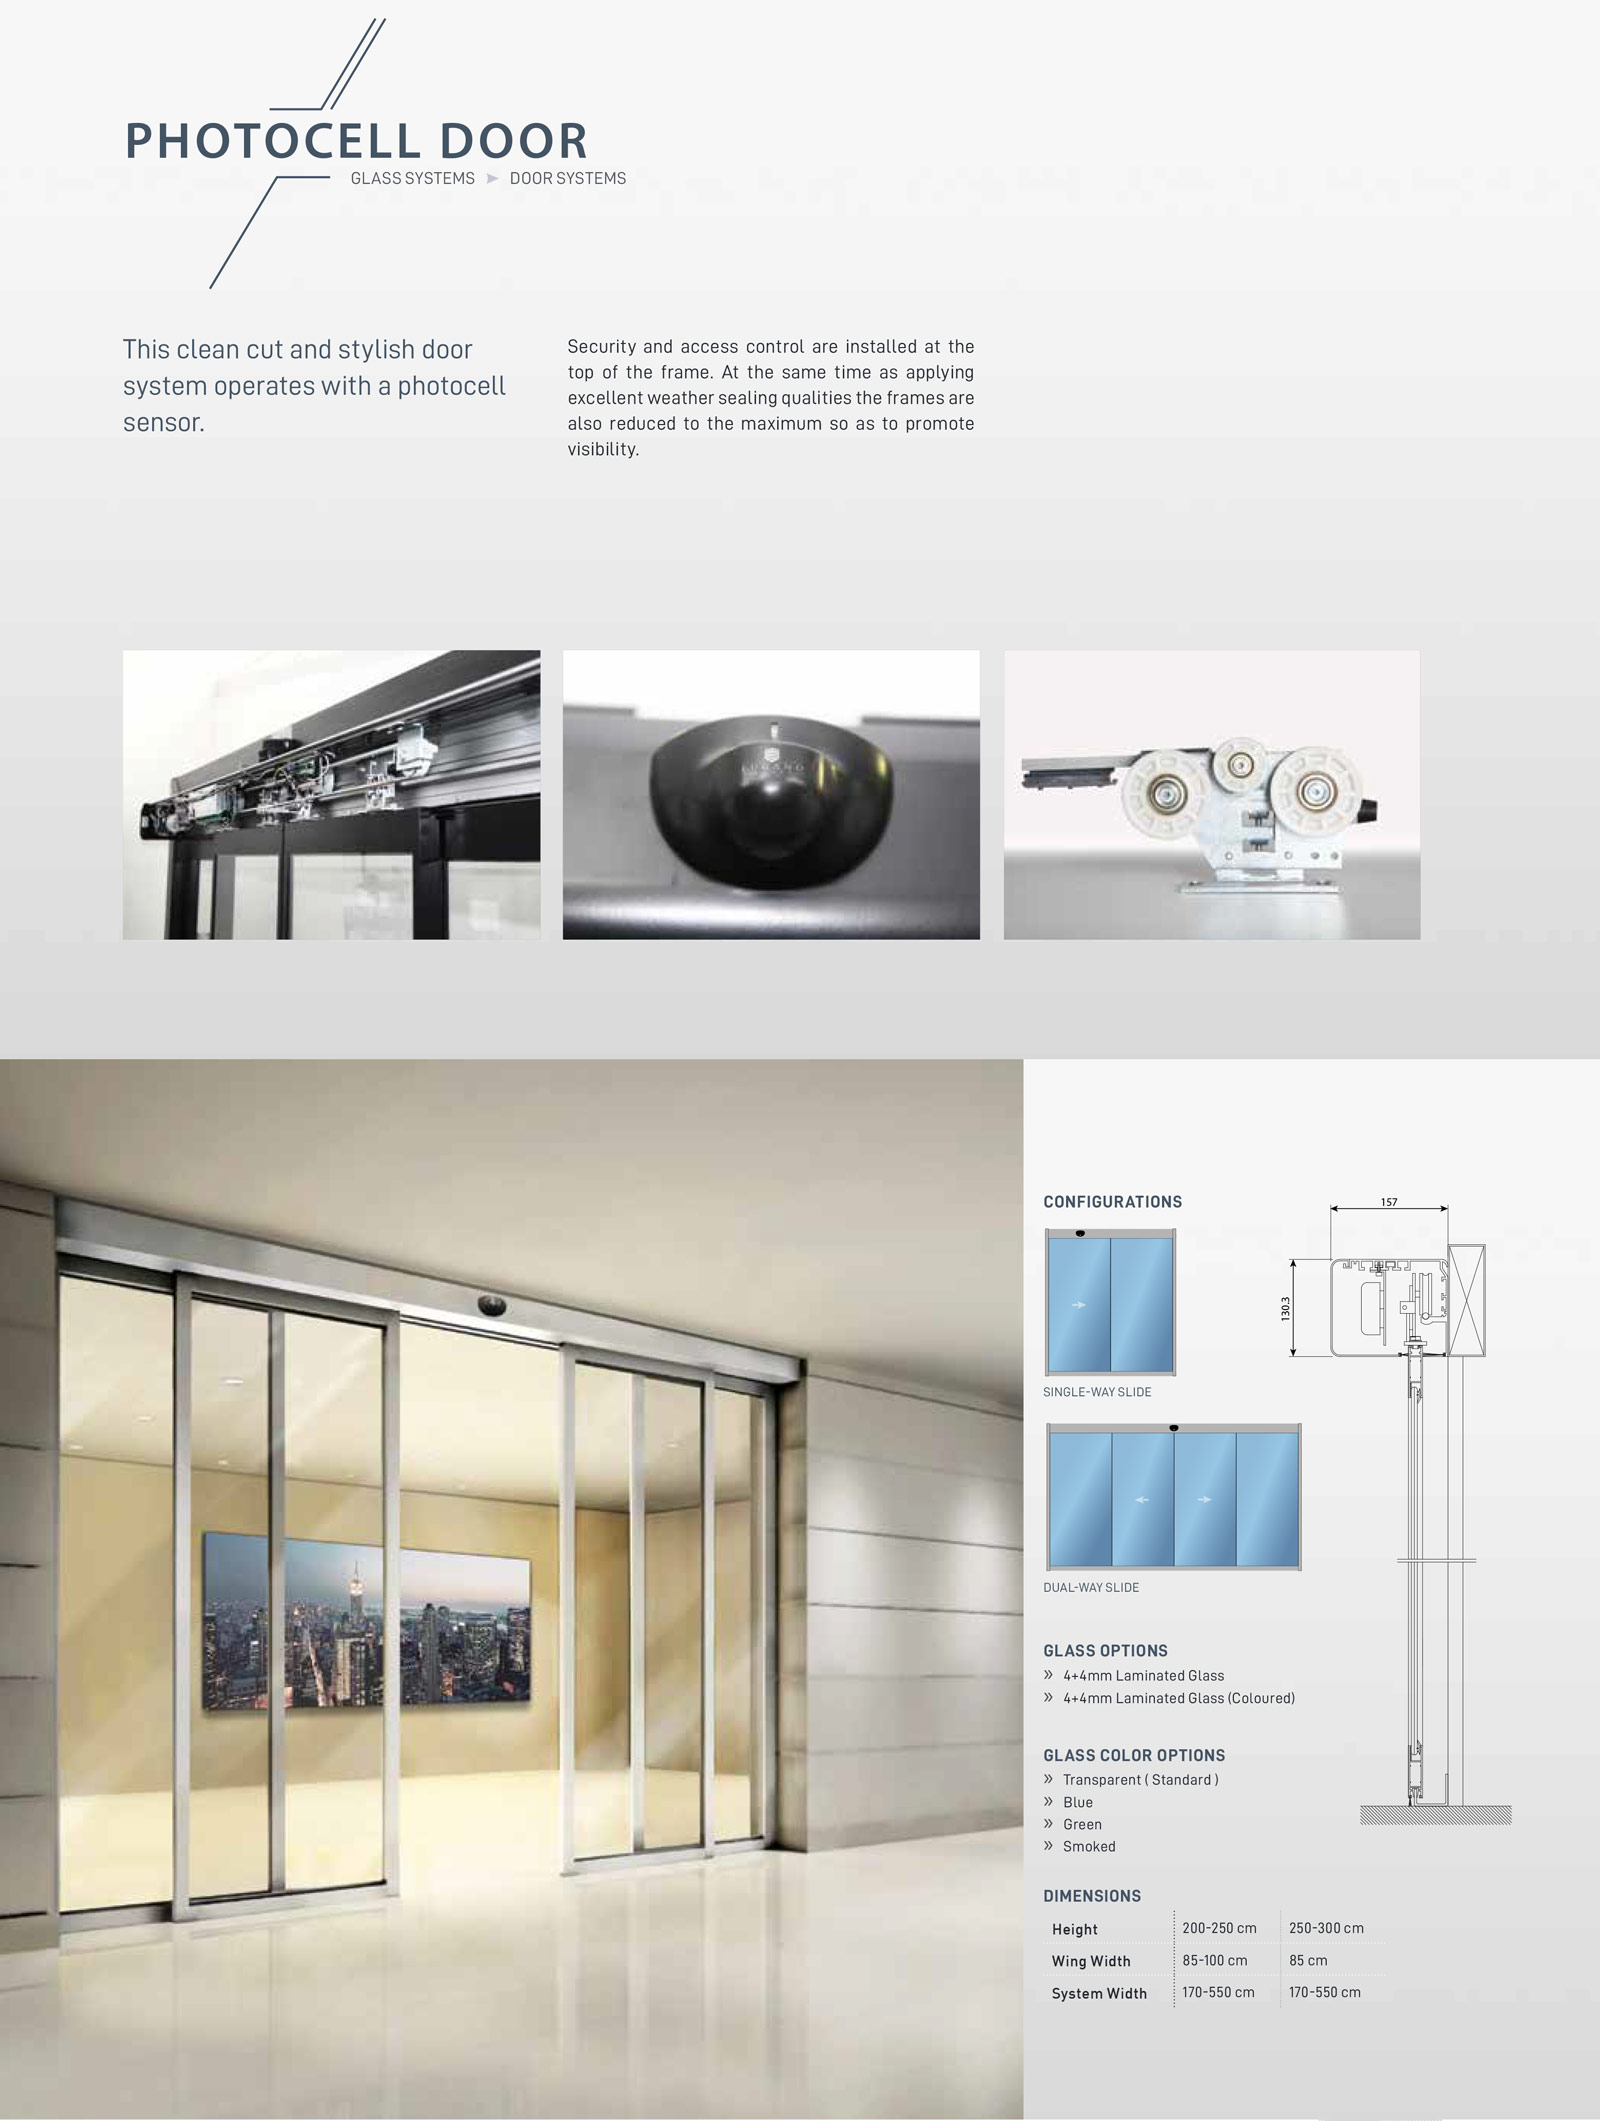 Photocell-Door